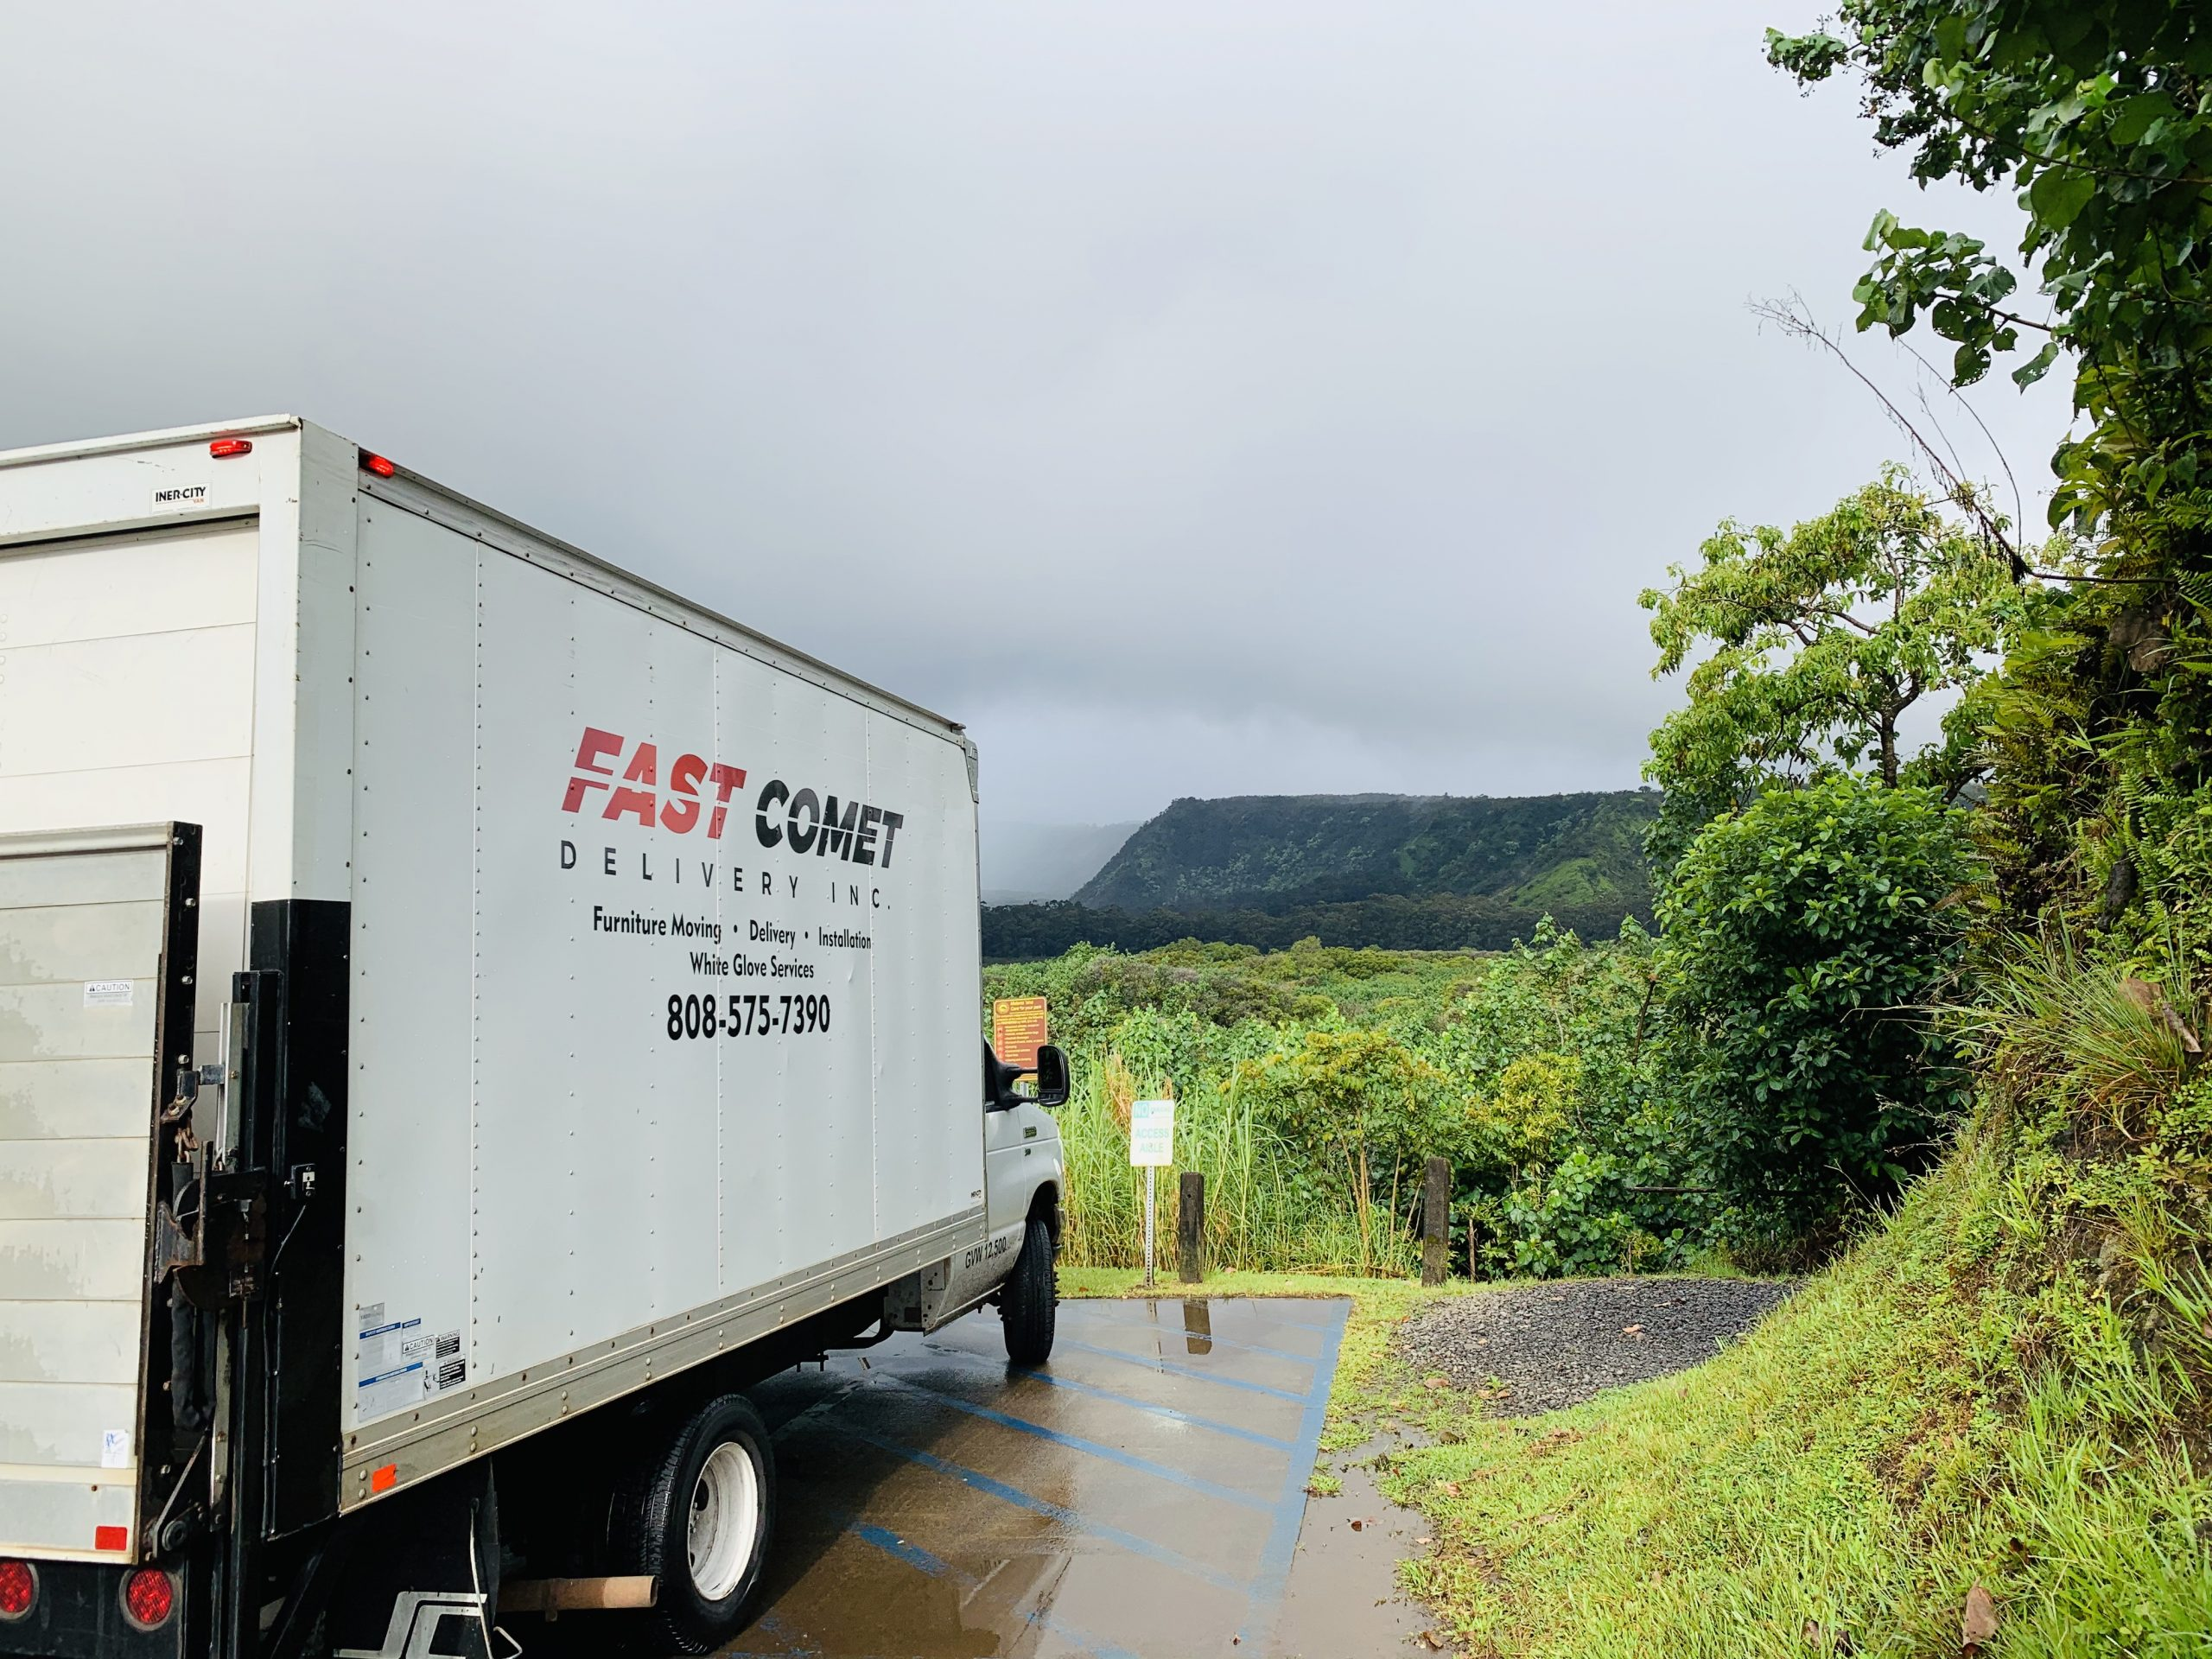 Fast Comet Delivery Truck 10 - Maui Hawaii